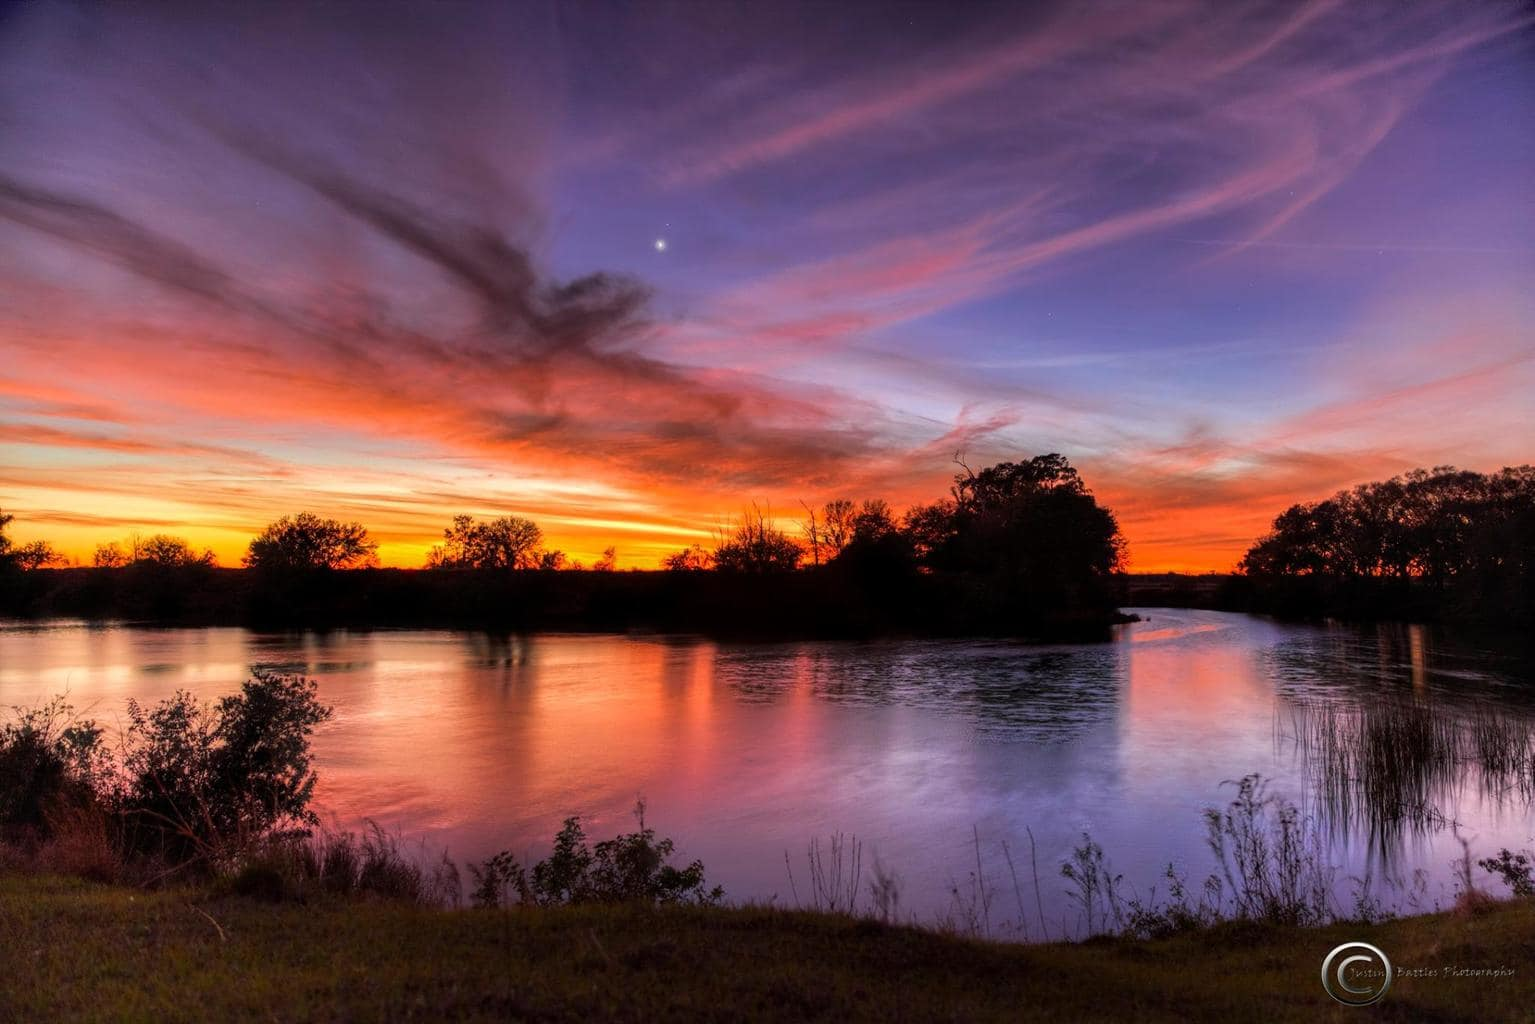 Epic cold tonight in Florida (for Florida, lol)....yields epic sunset afterglow with Venus and Mars